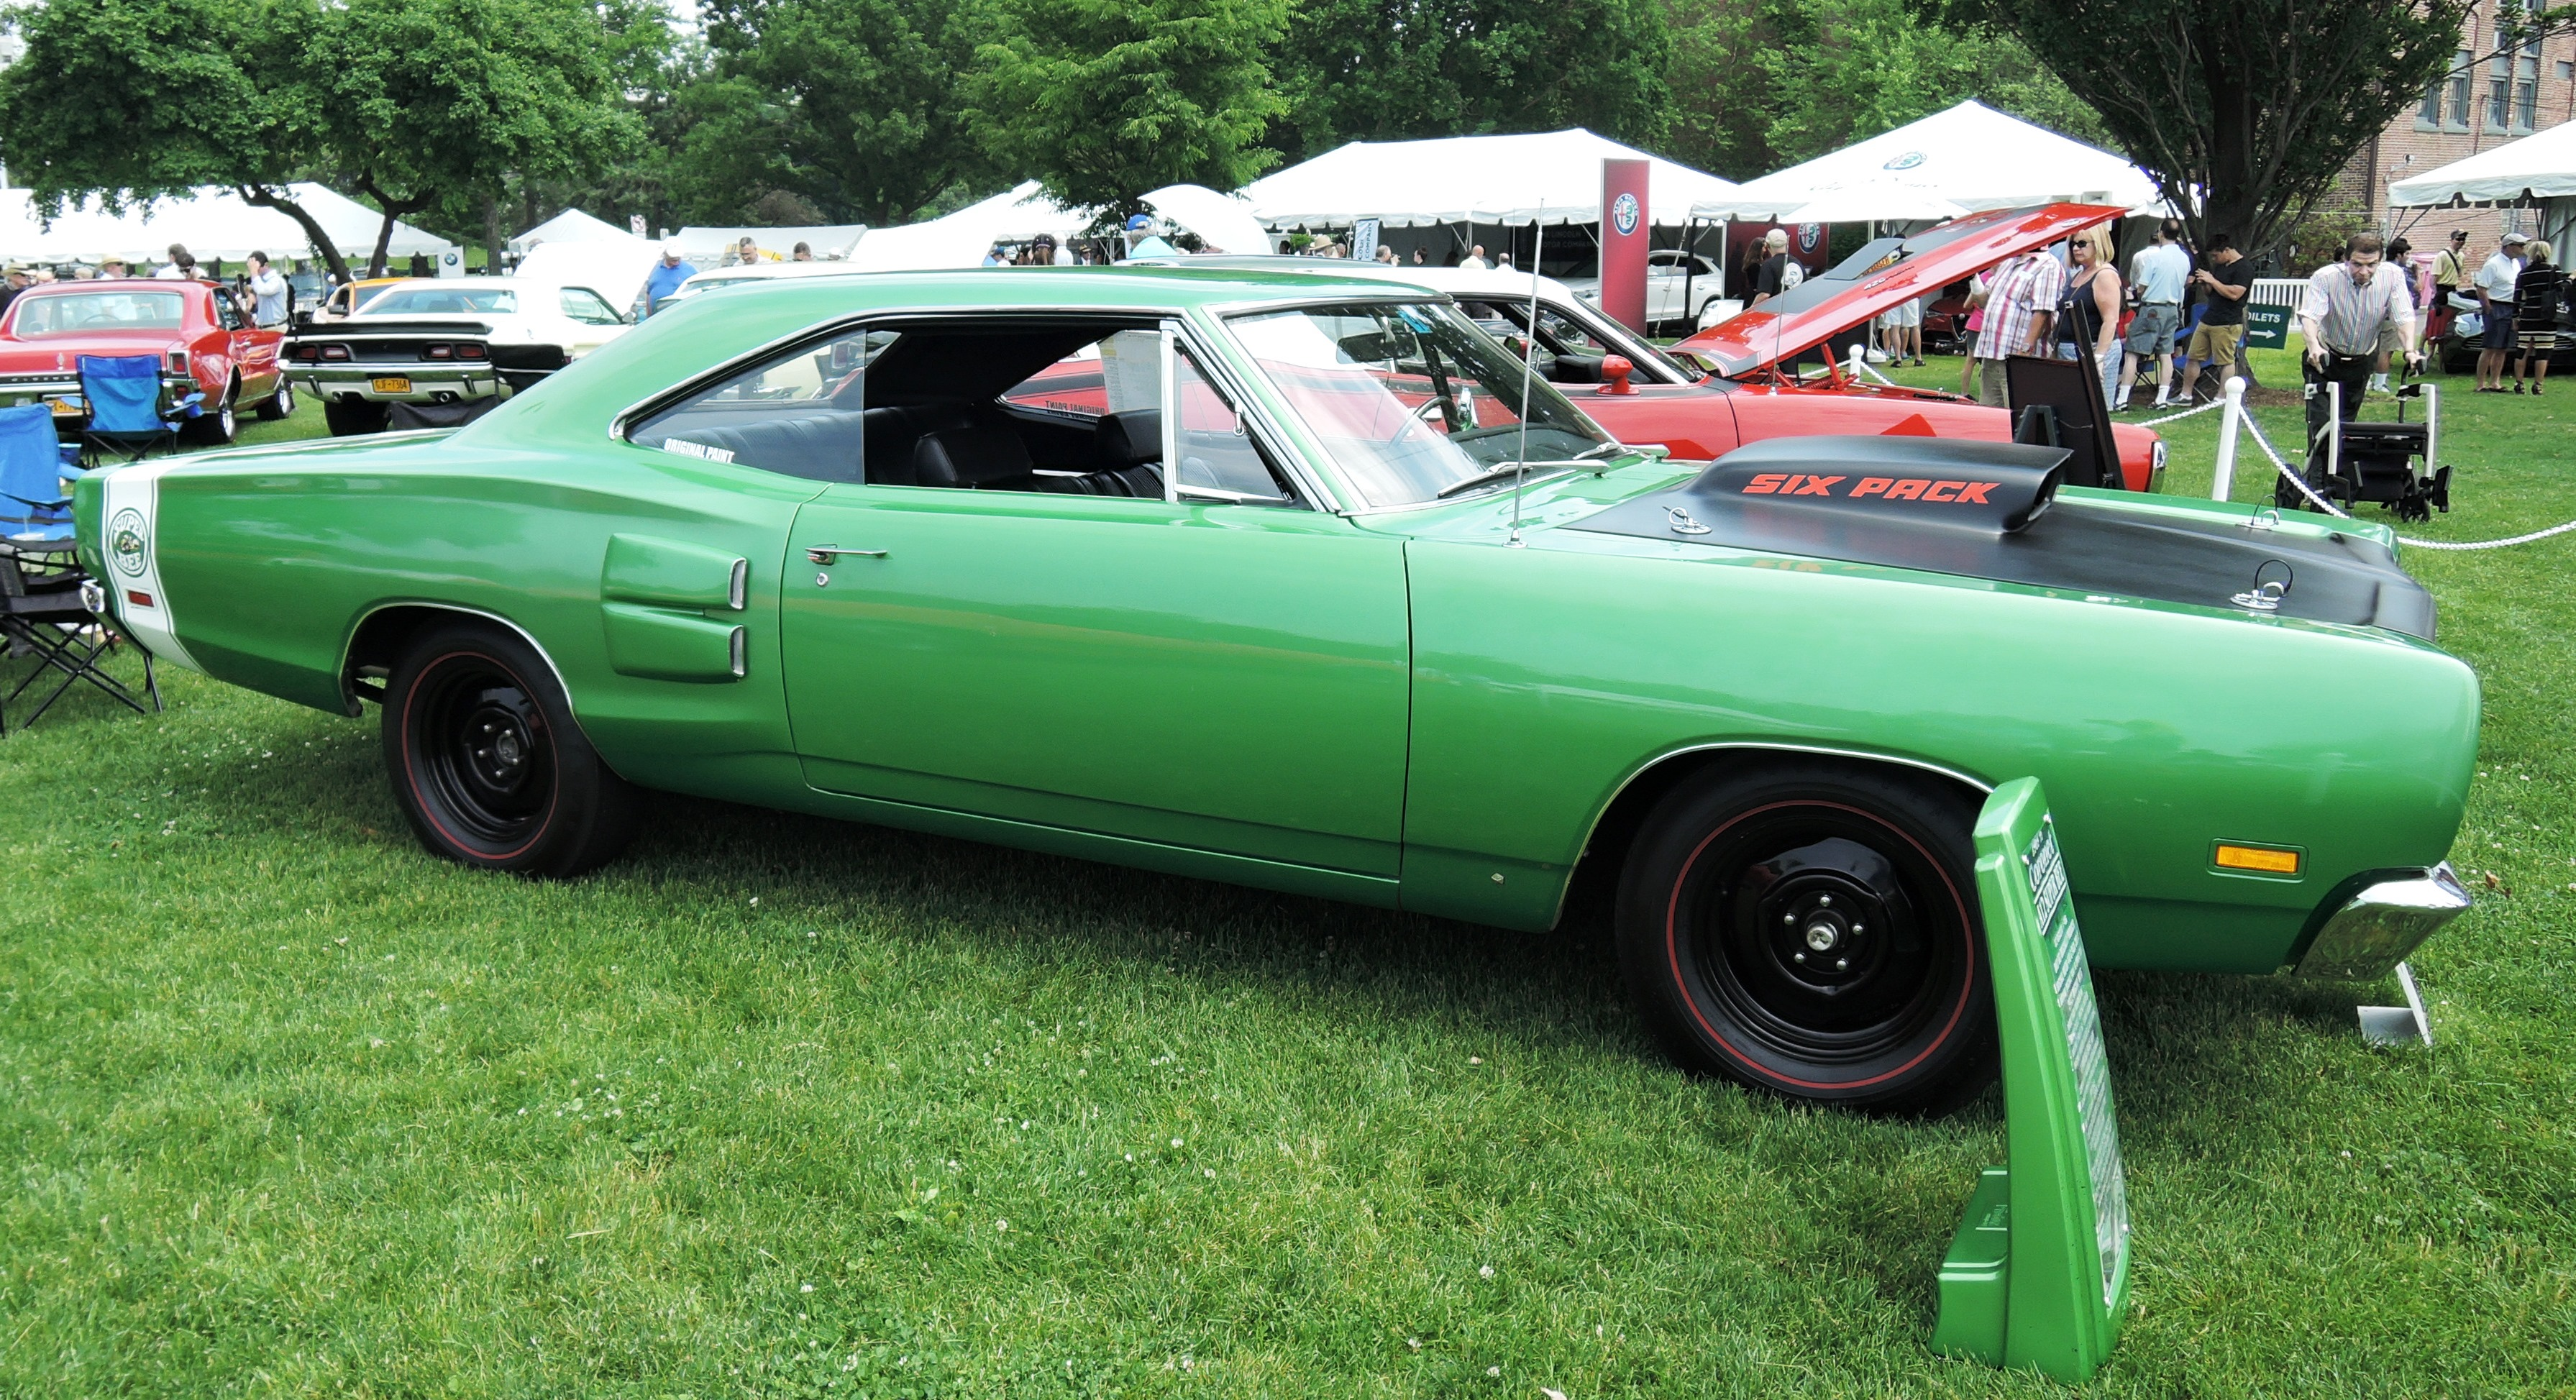 green 1969 1/2 Dodge Super Bee - greenwich concours